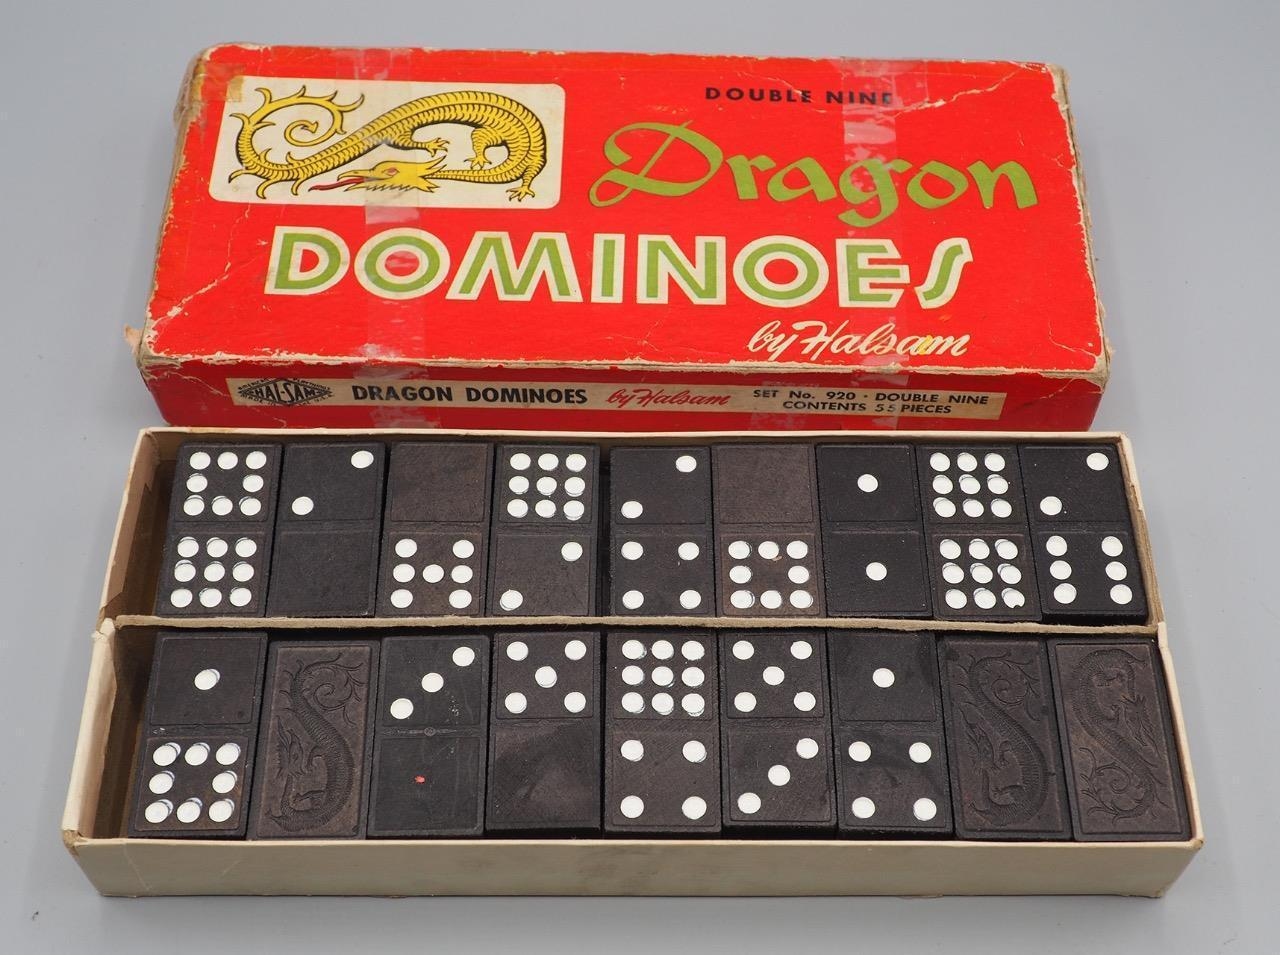 Vintage Dragon Dominoes by Halsam No. 920 Double Nine 54 Pieces